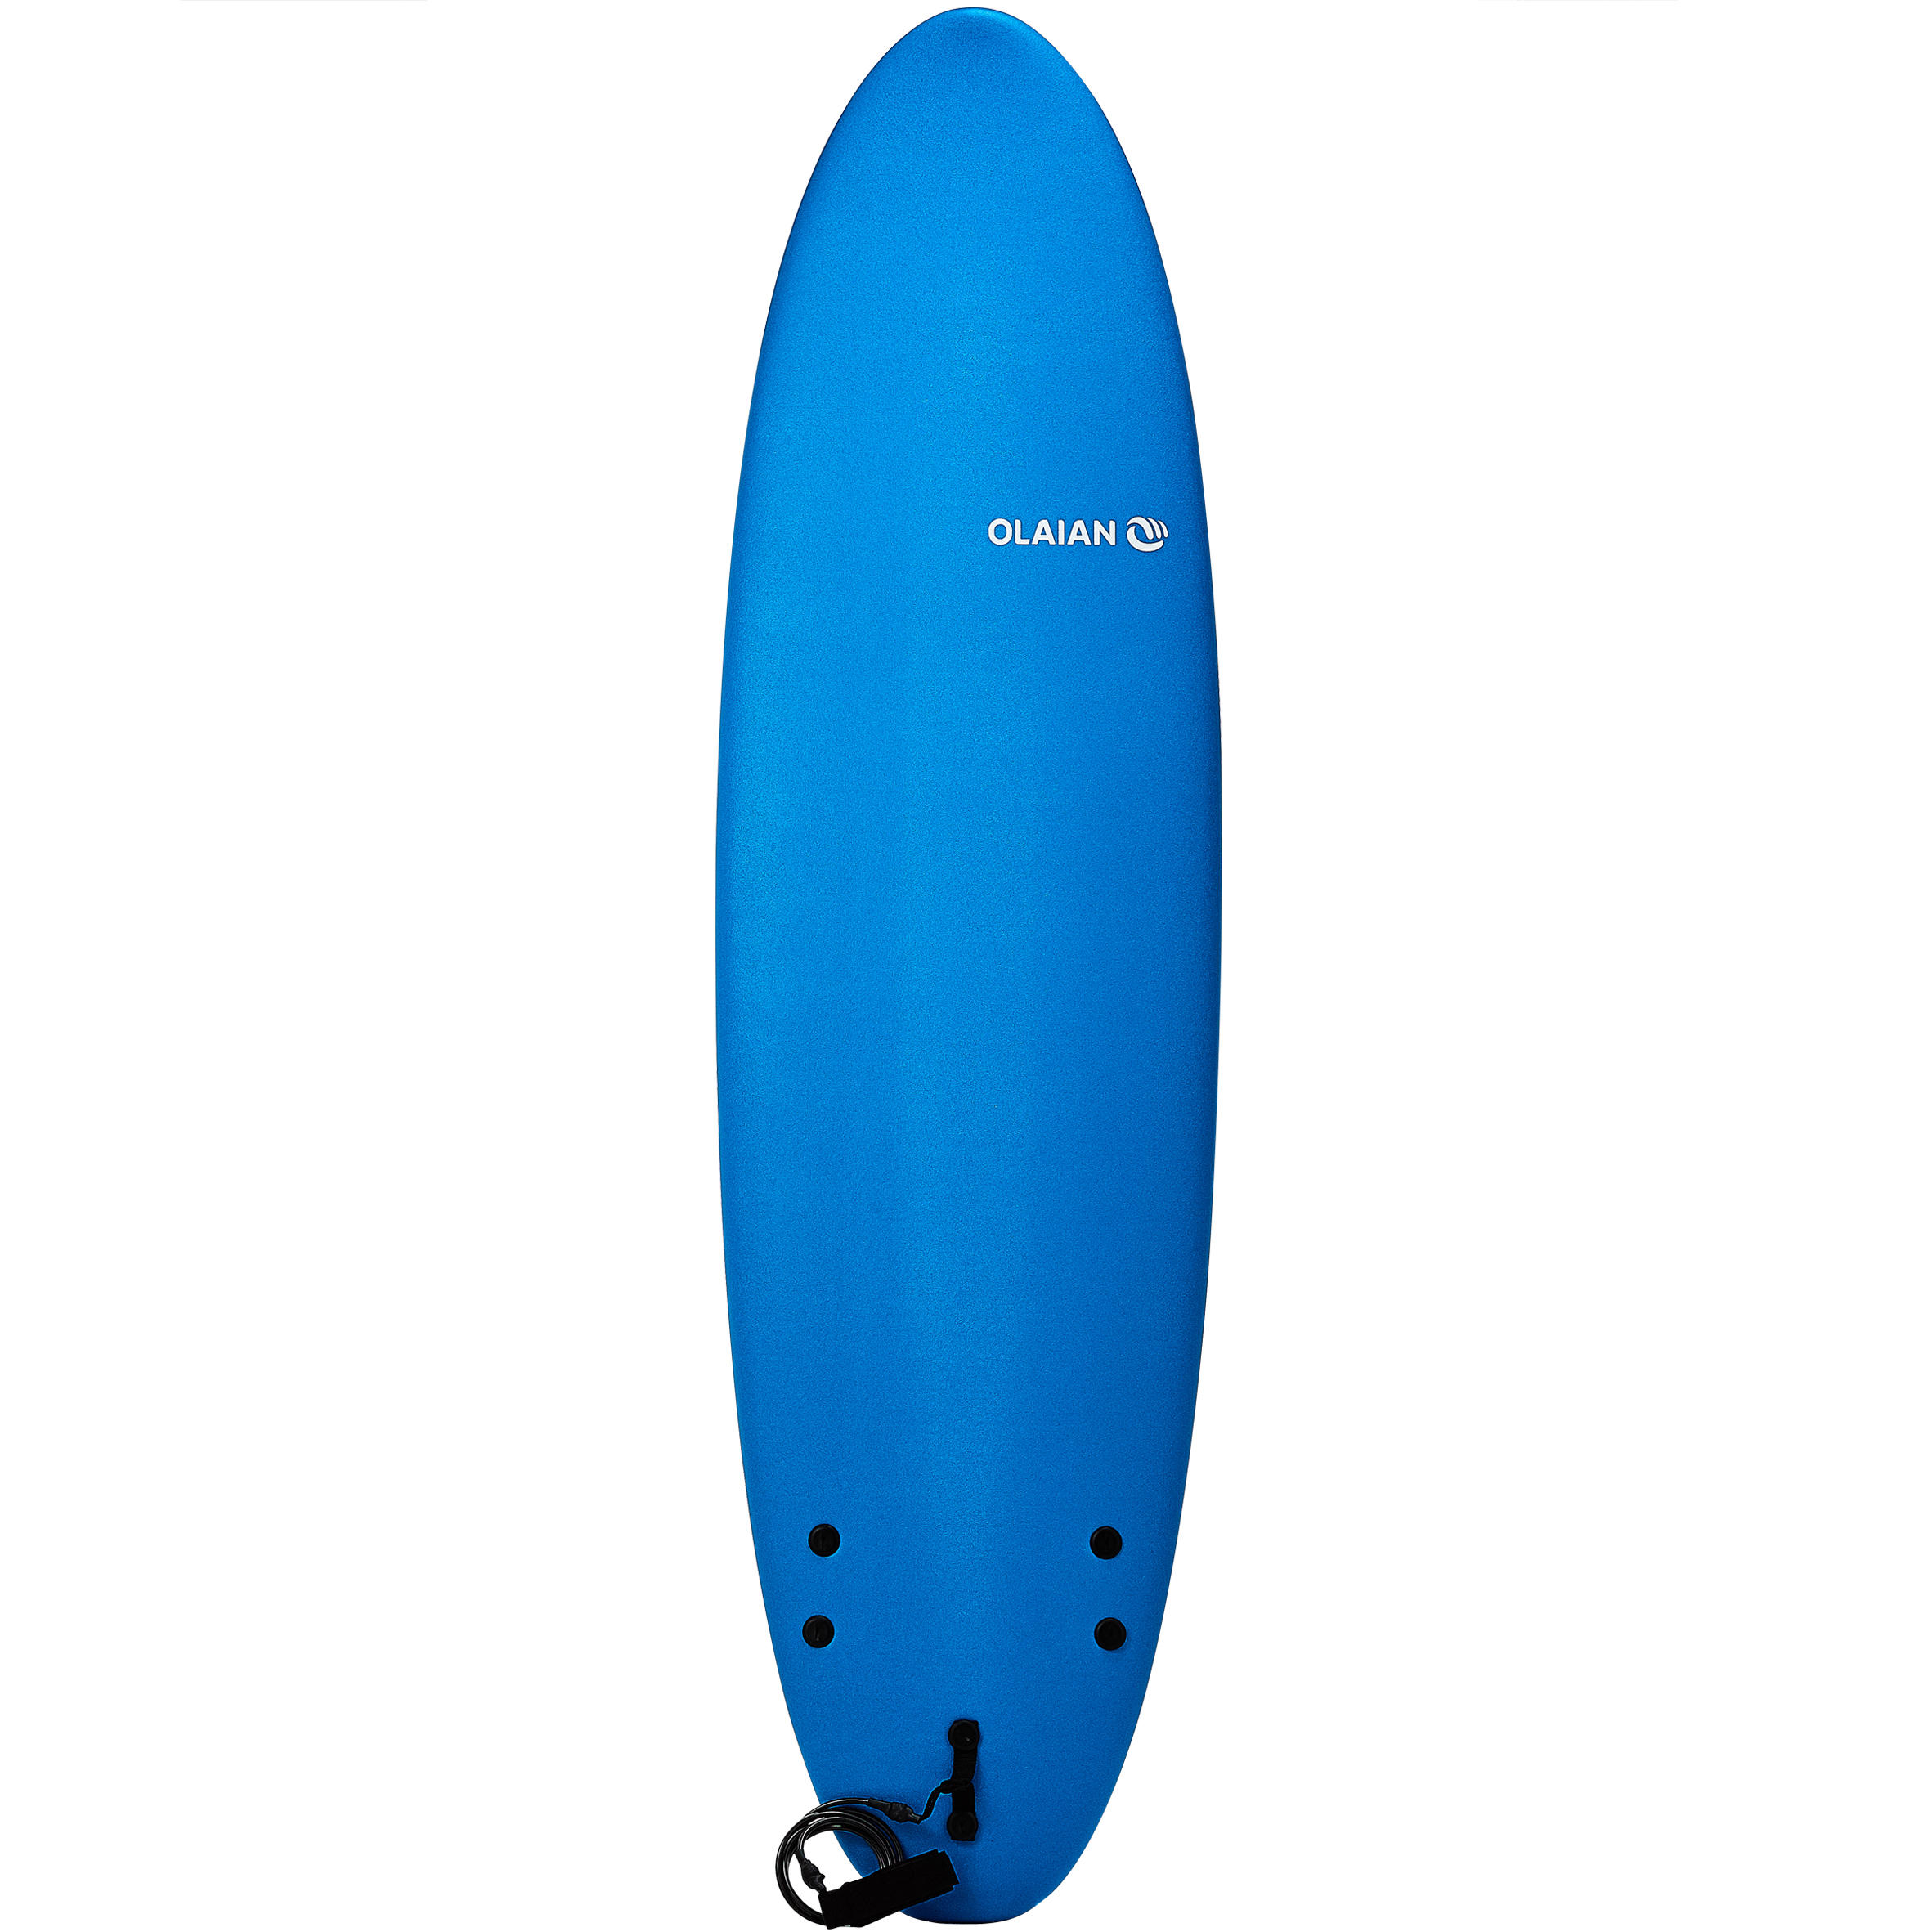 100 Foam Surfboard 7'. Supplied with a leash and 3 fins.